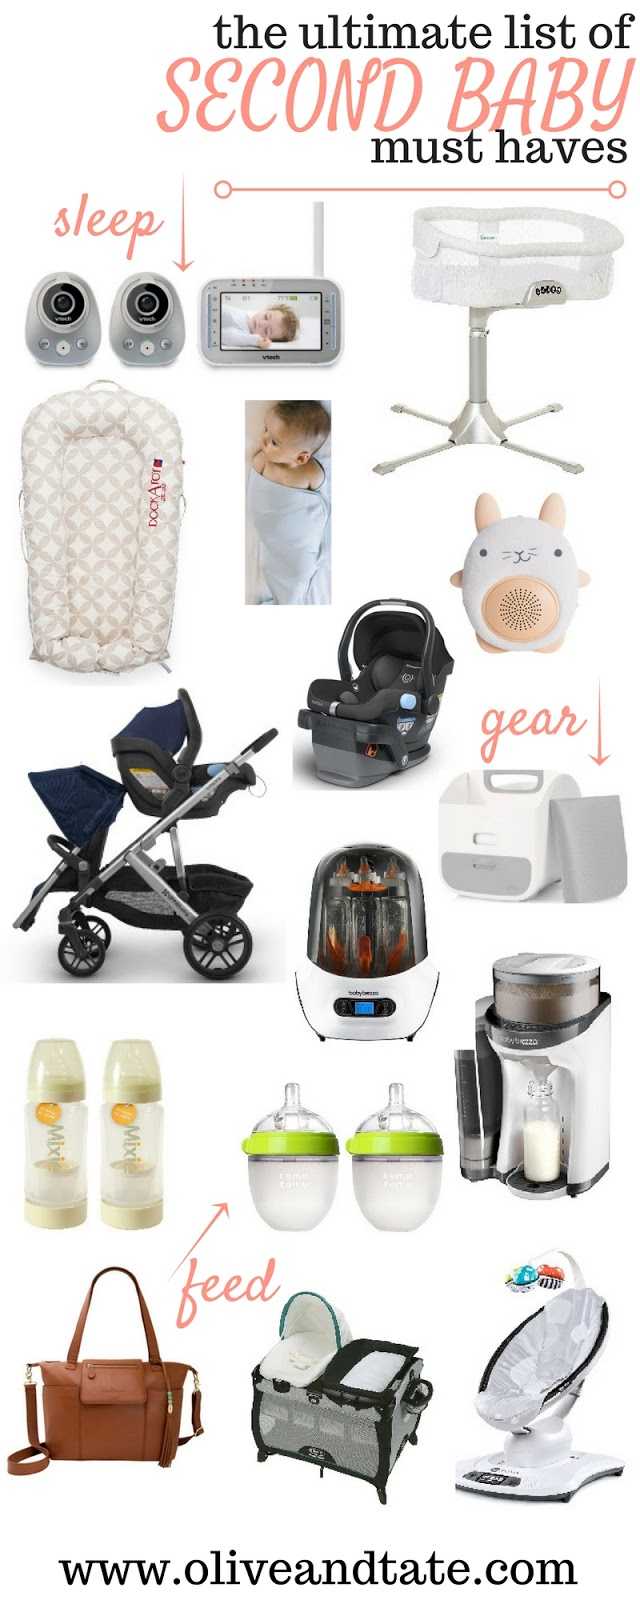 Ultimate List of second baby must have